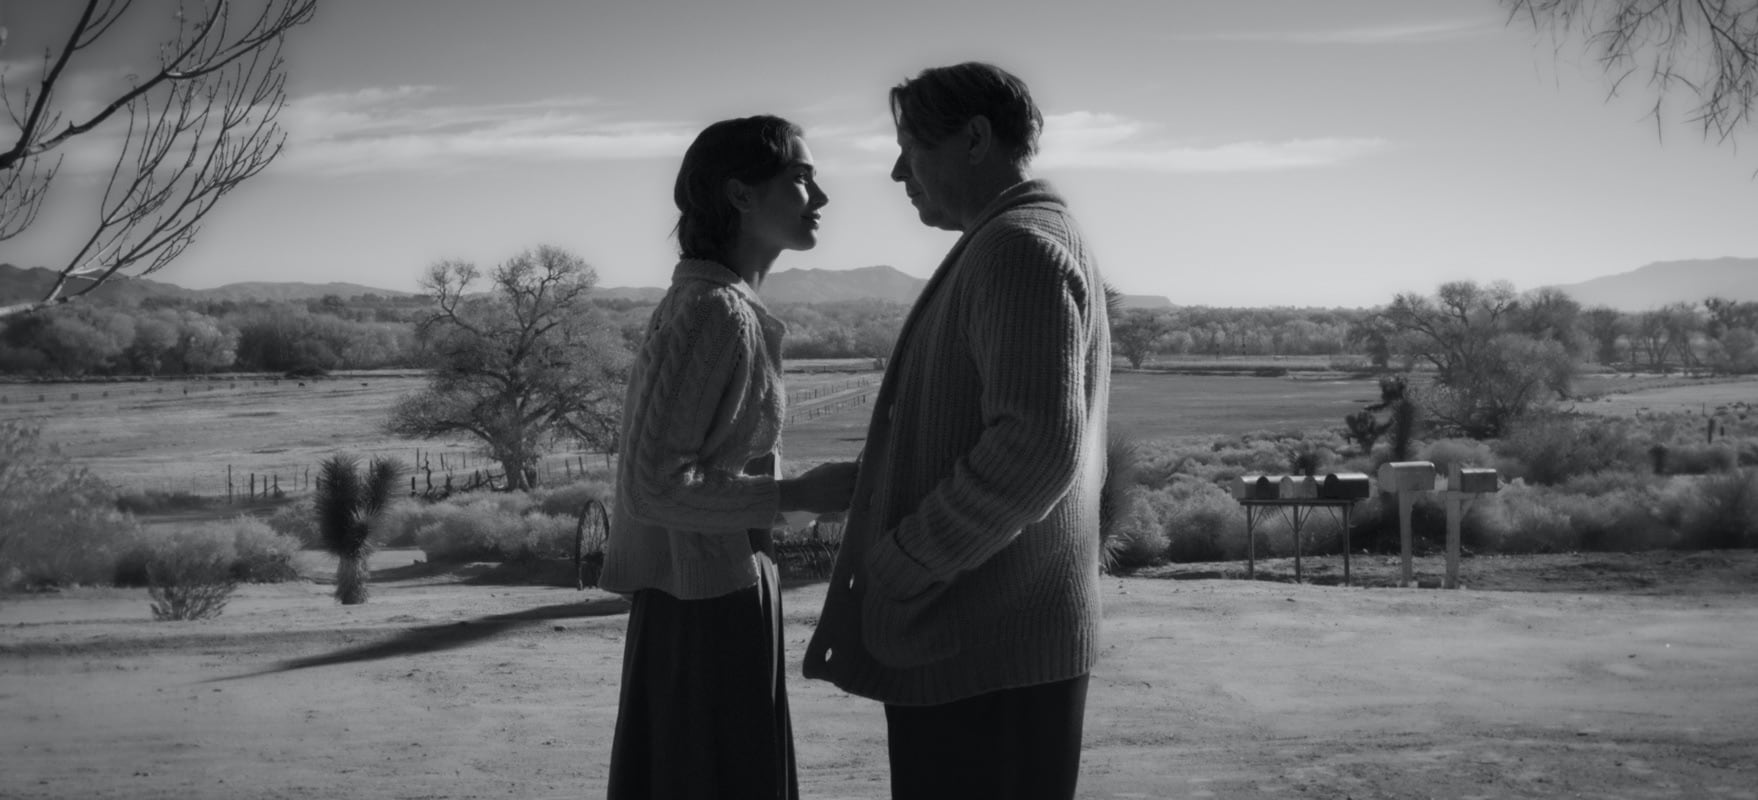 Lily Collins shares a scene with Mank co-star Gary Oldman. They are silhouetted against a desert landscape, wearing the most luscious cable-knit sweaters.